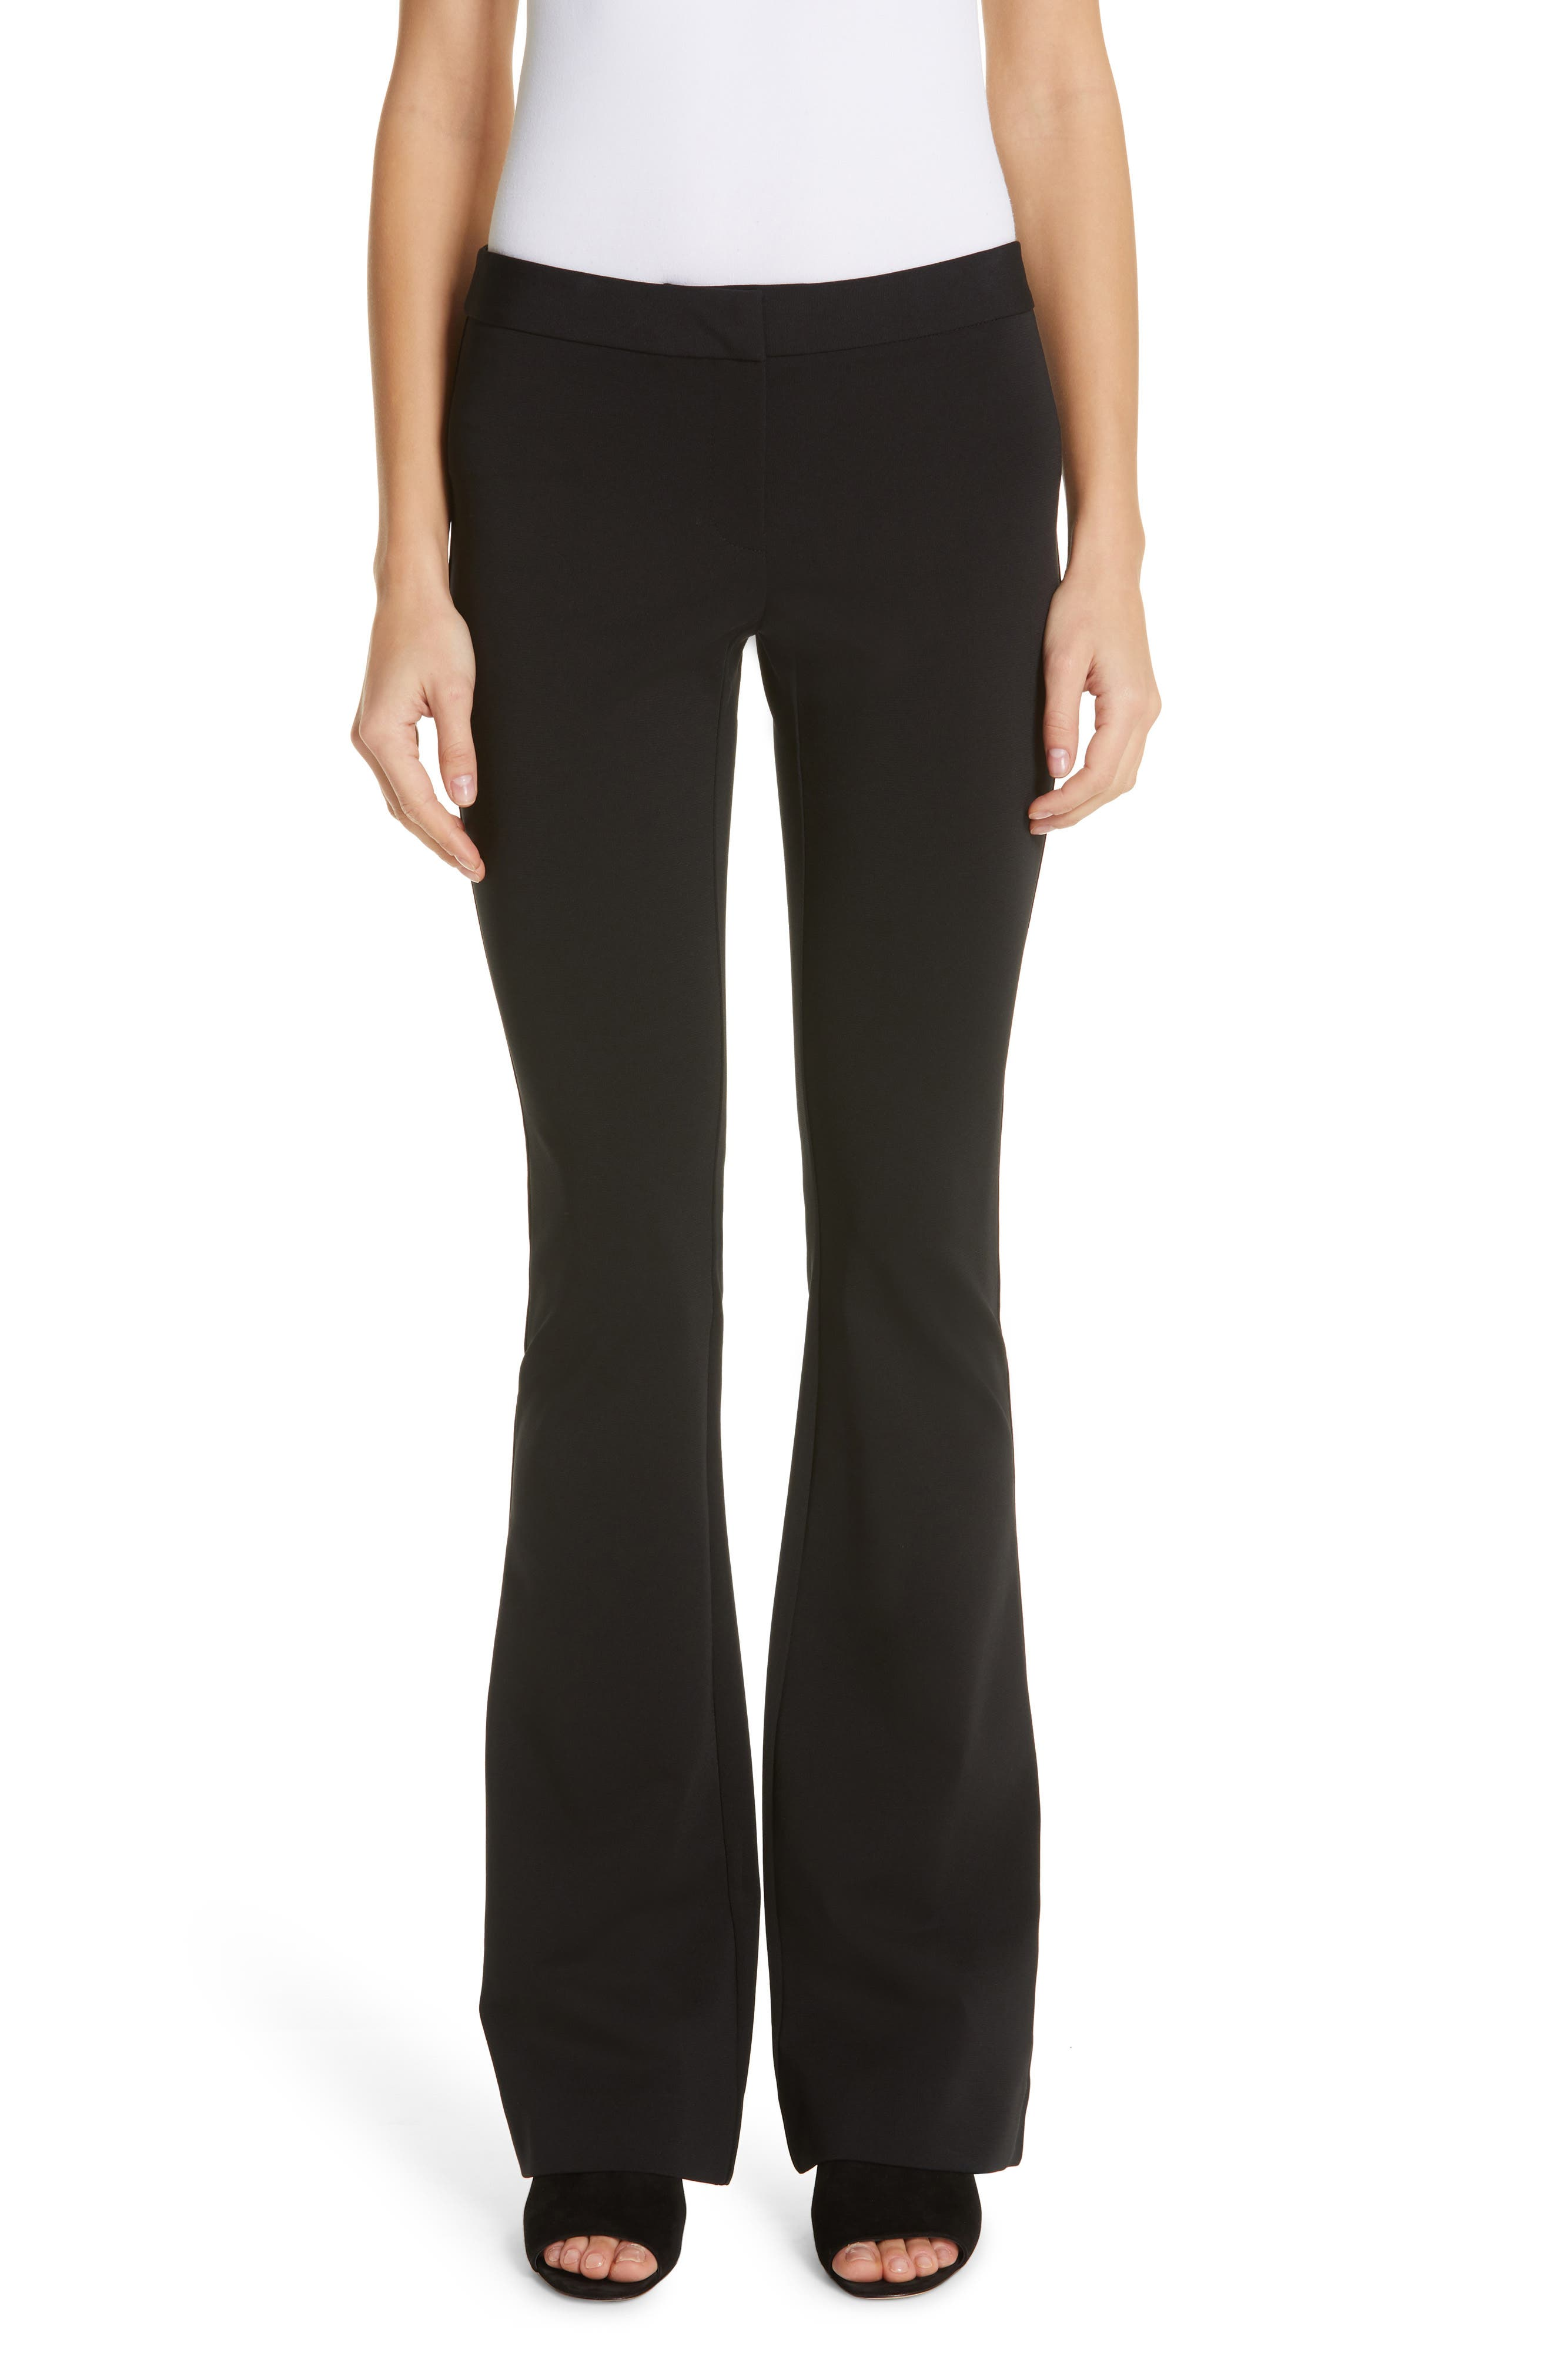 LAFAYETTE 148 NEW YORK Waldorf Flare Pants, Main, color, BLACK